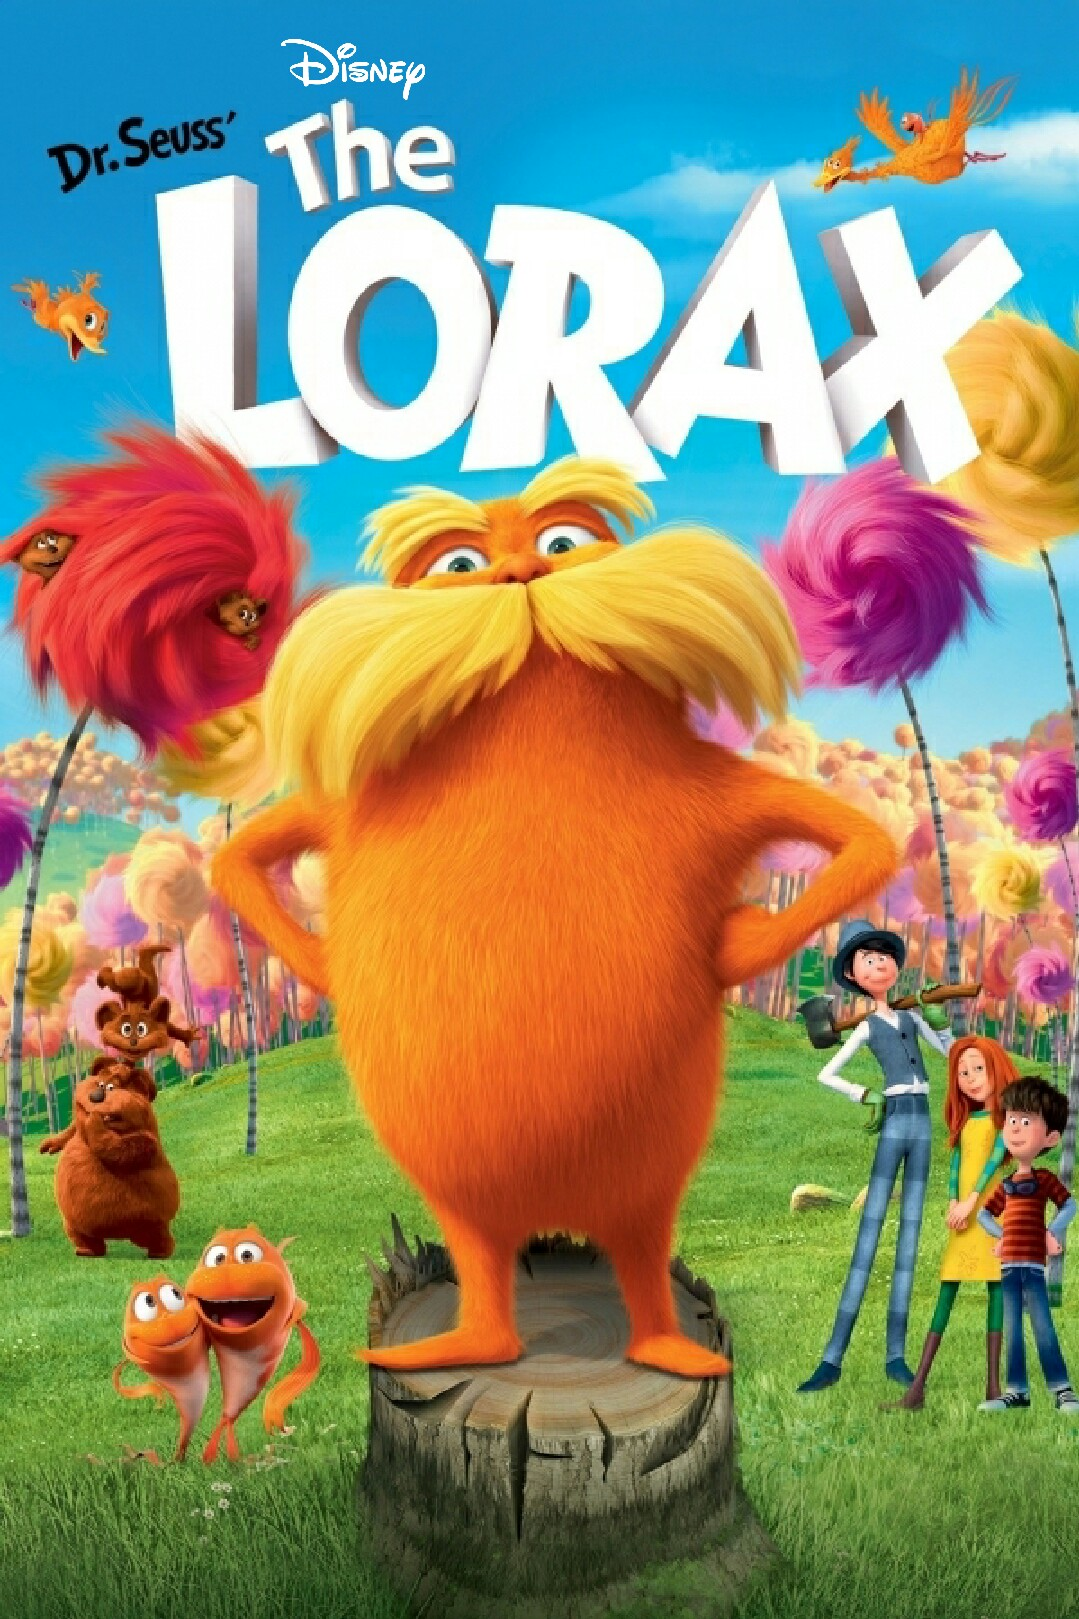 The Lorax film poster